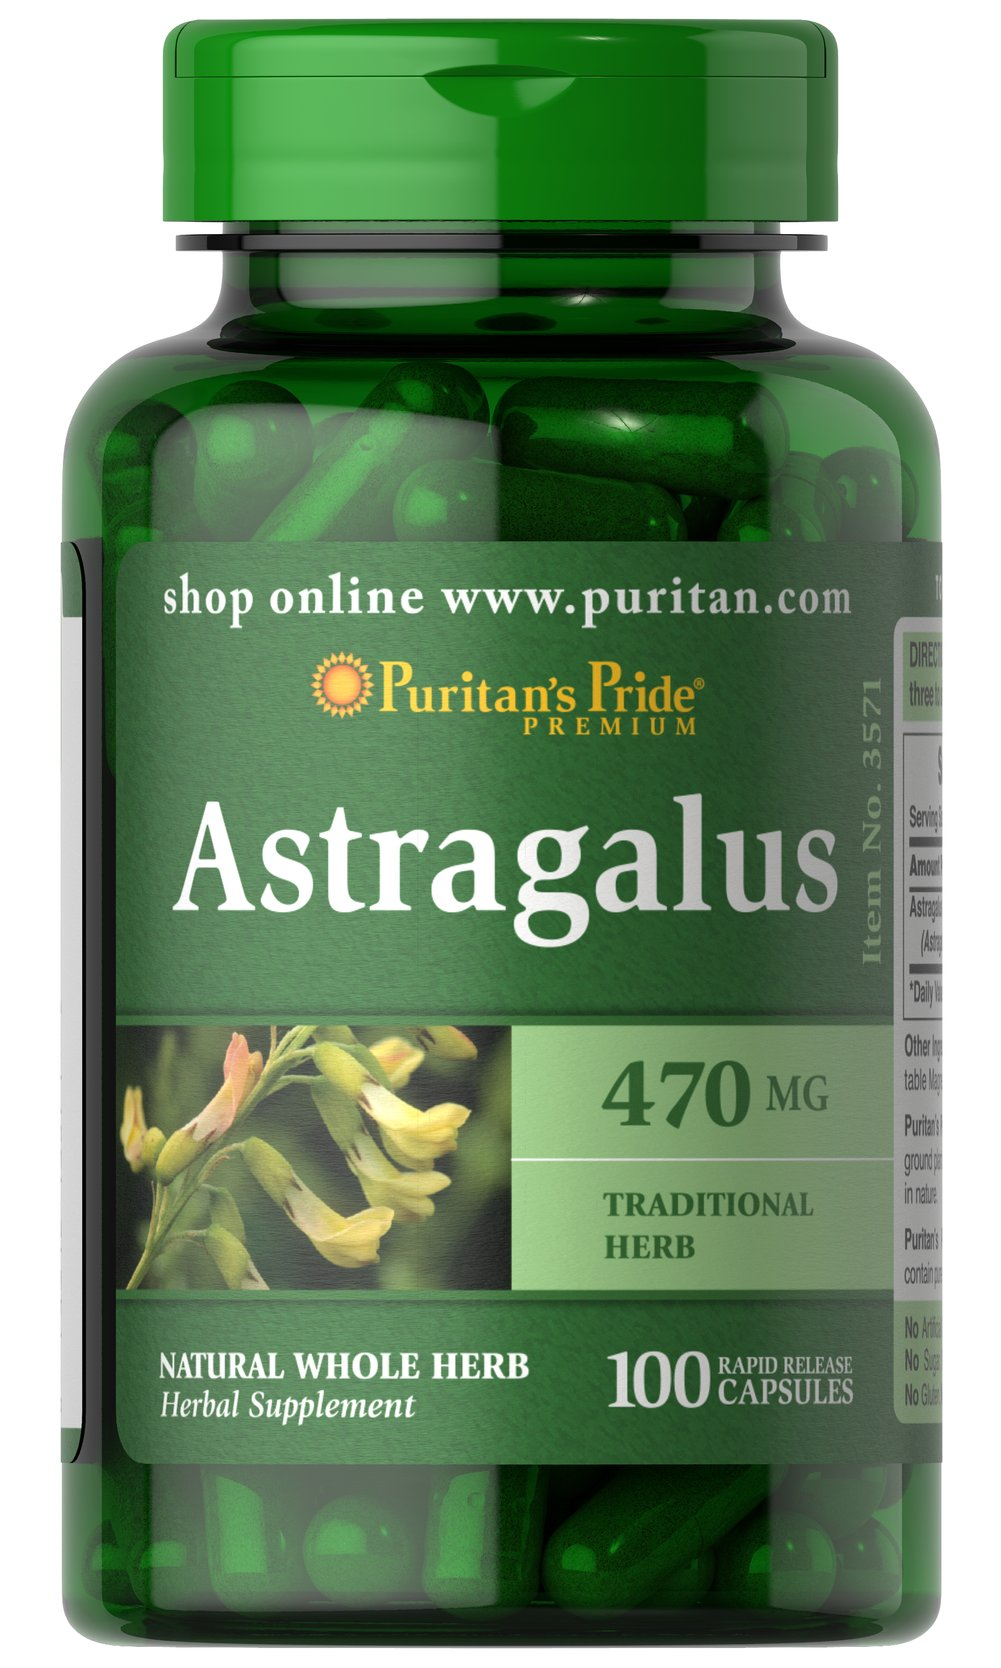 Astragalus 470 mg <p>Traditional Chinese Herb </p><p>Astragalus contains naturally occurring flavonoids and polysaccharides. As a traditional Chinese herb, Astragalus is known for its goodness.</p> 100 Capsules 470 mg $8.99